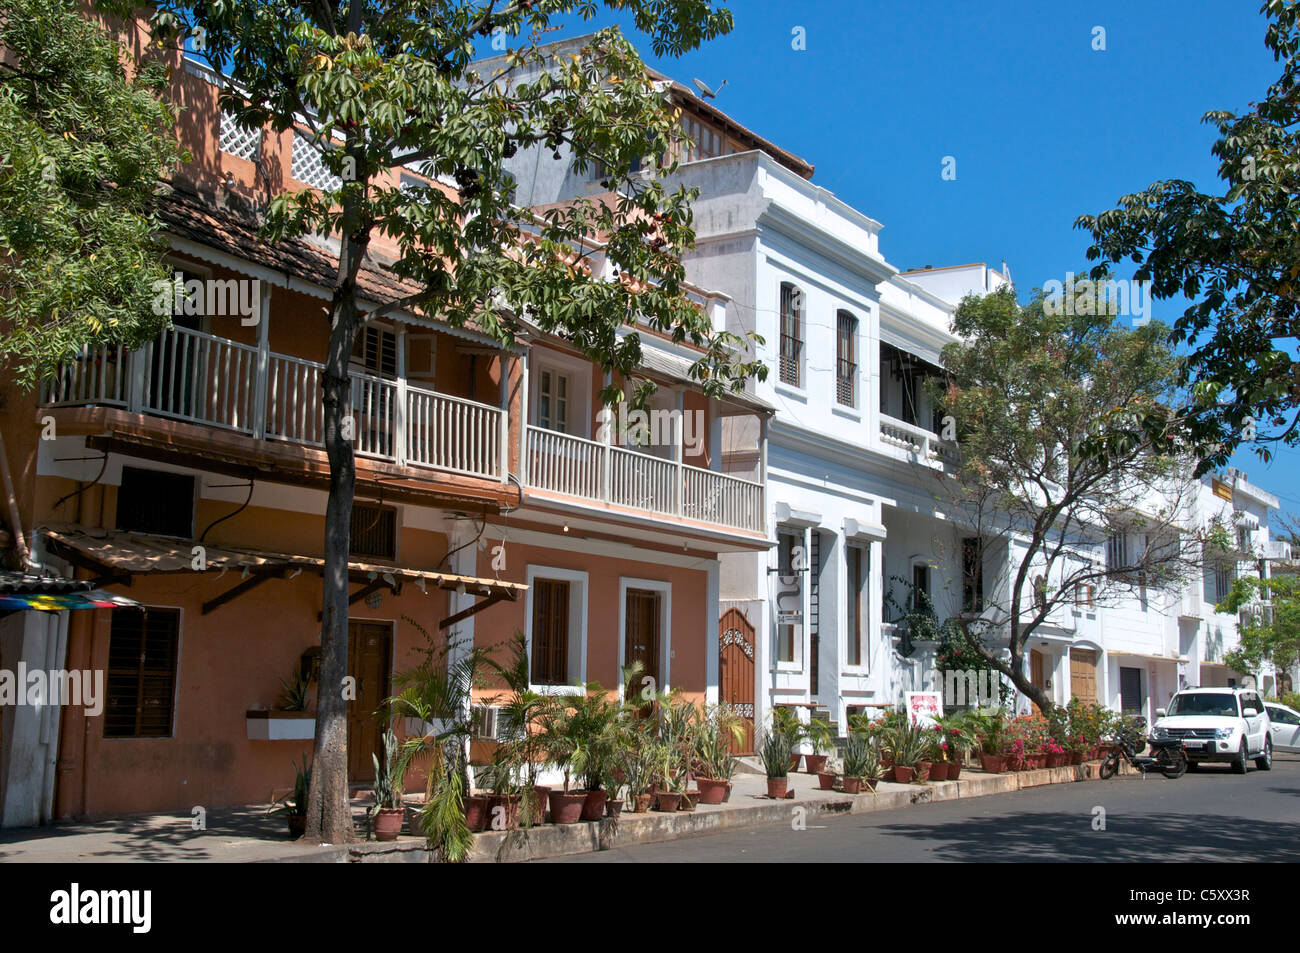 Puducherry Stock Photos Images Alamy House Wiring Books In Tamil Typical Buildings French Quarter Pondicherry Nadu South India Image